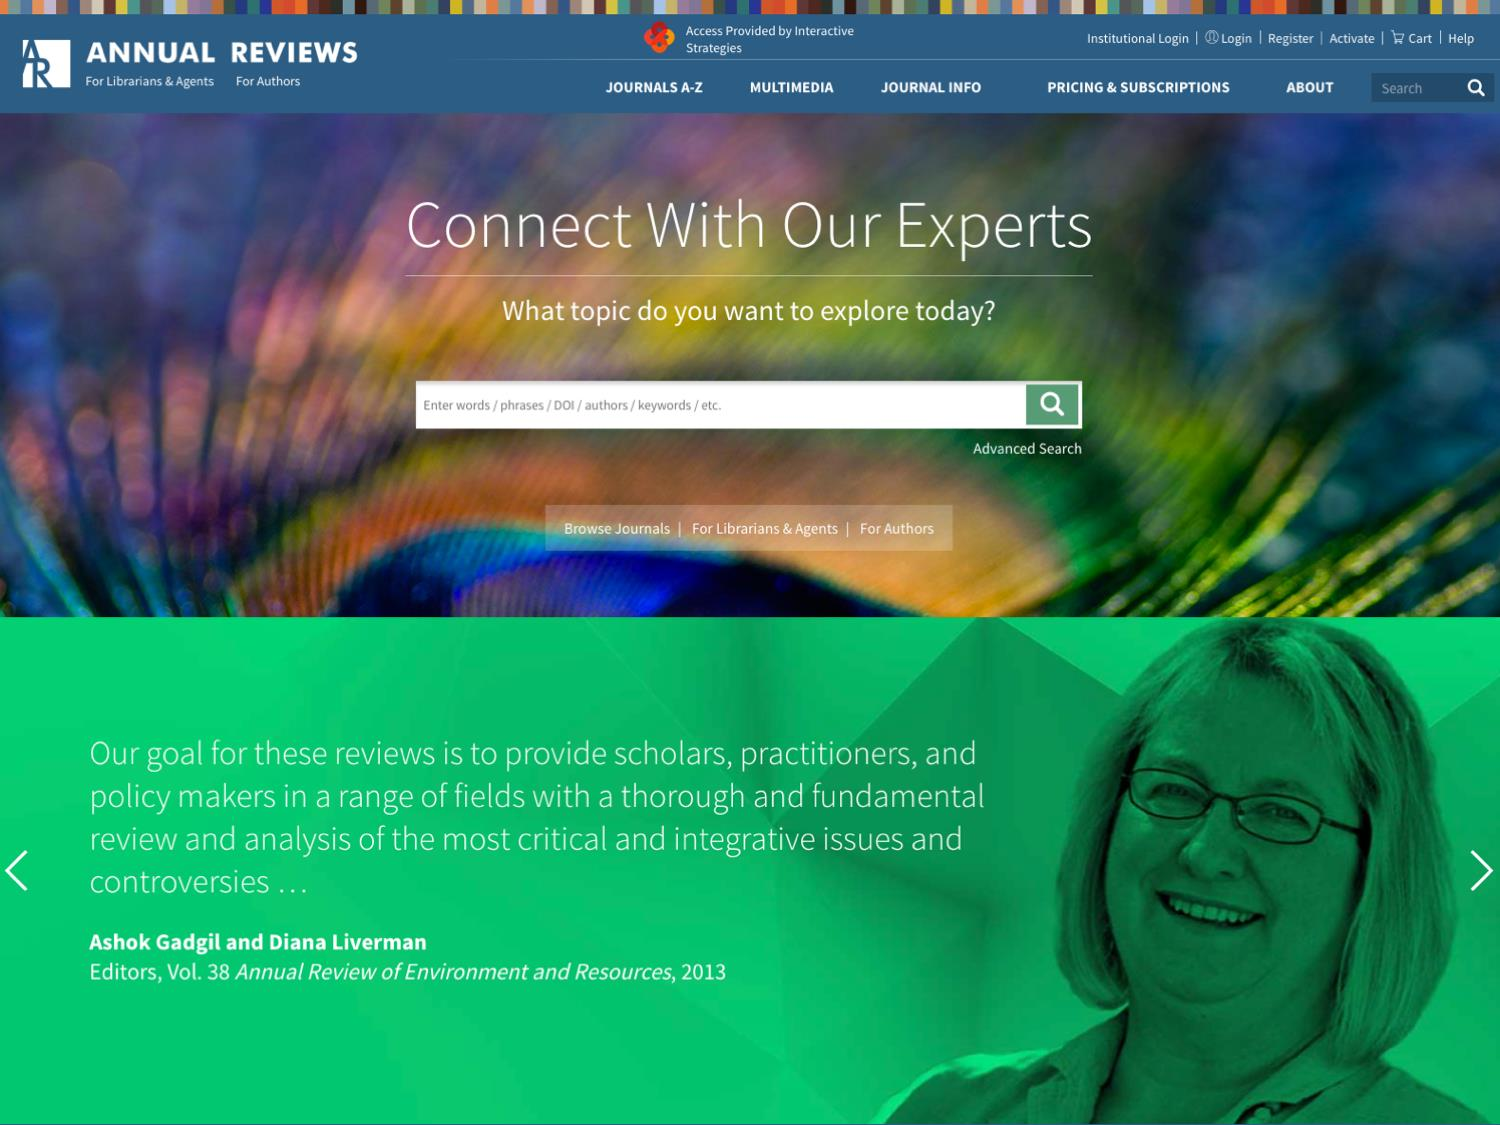 Annual Reviews Website Strategy, Design and Development